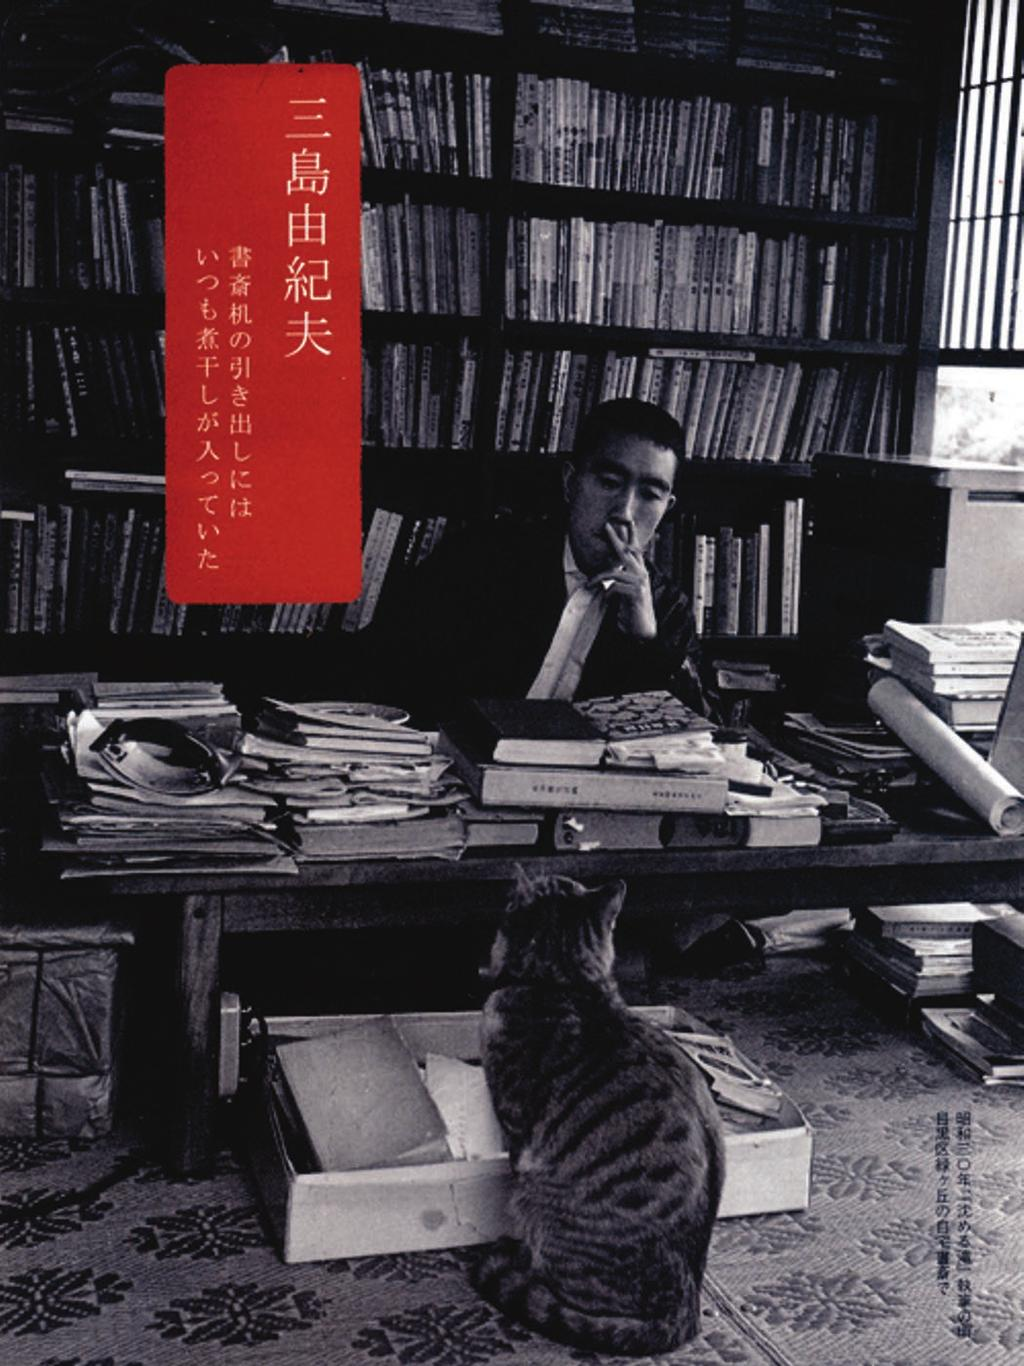 Chapter 4 Figure 4.7: Mishima and cat.